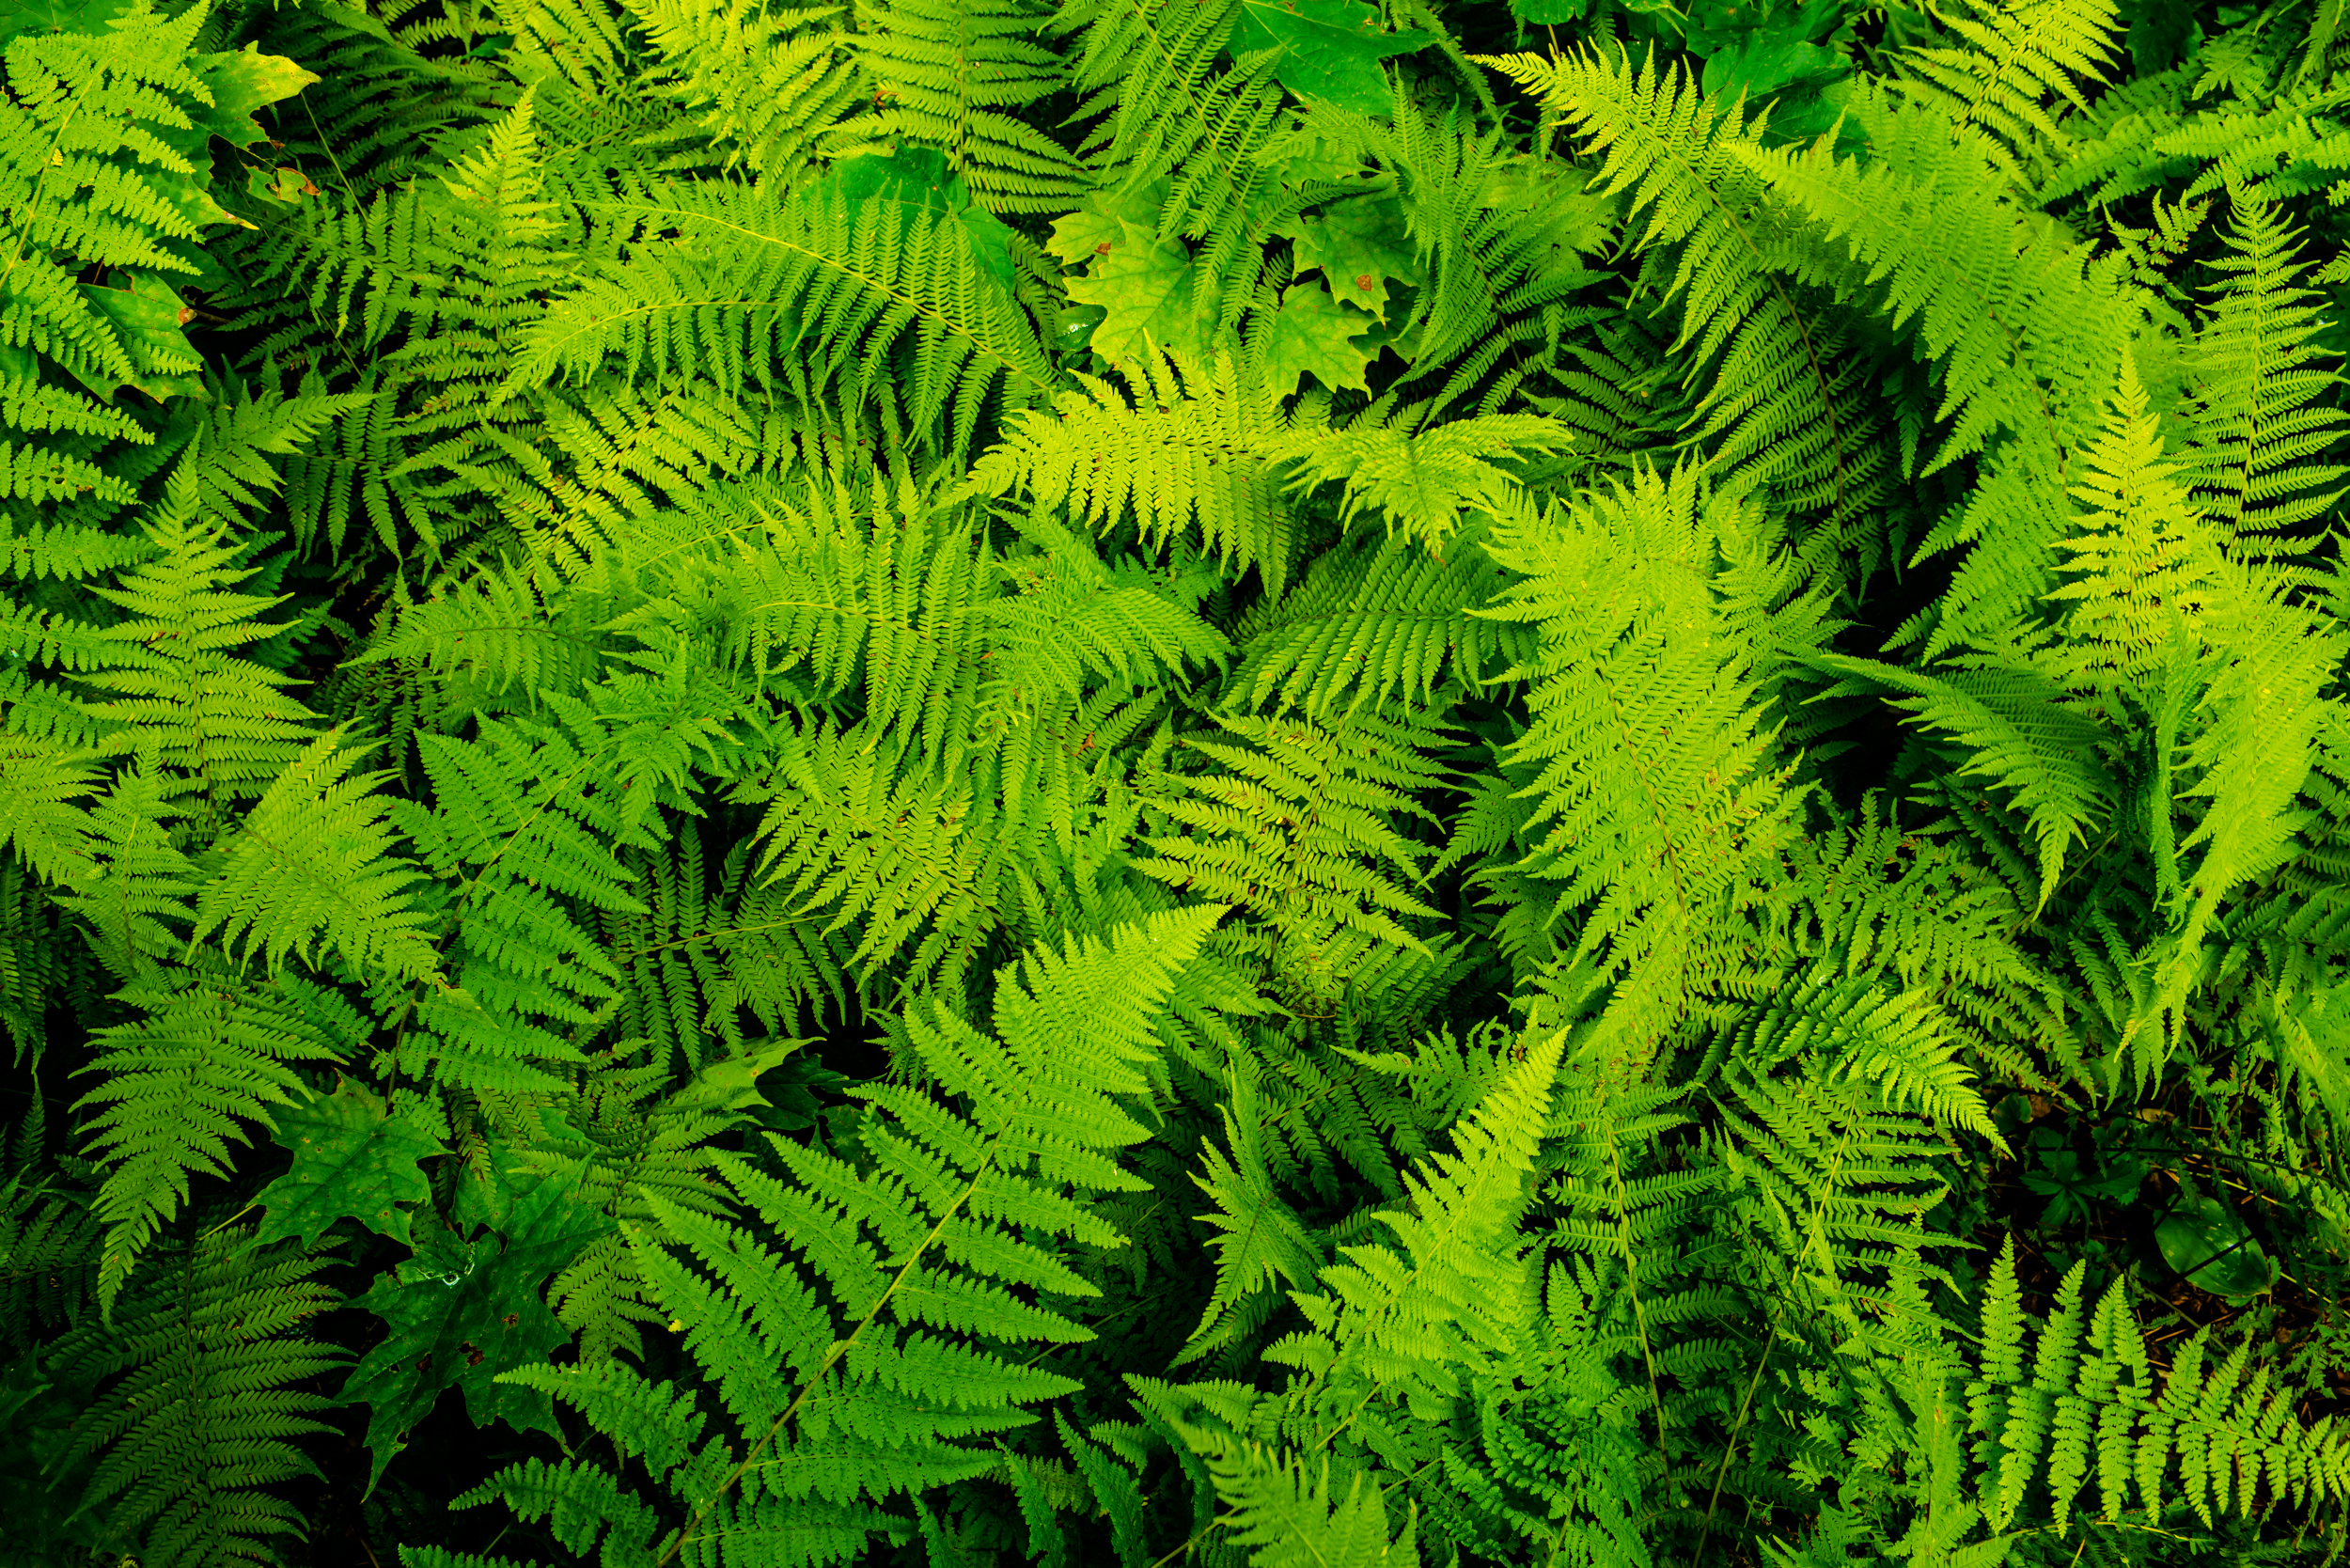 Ferns on the floor of a Vermont forest